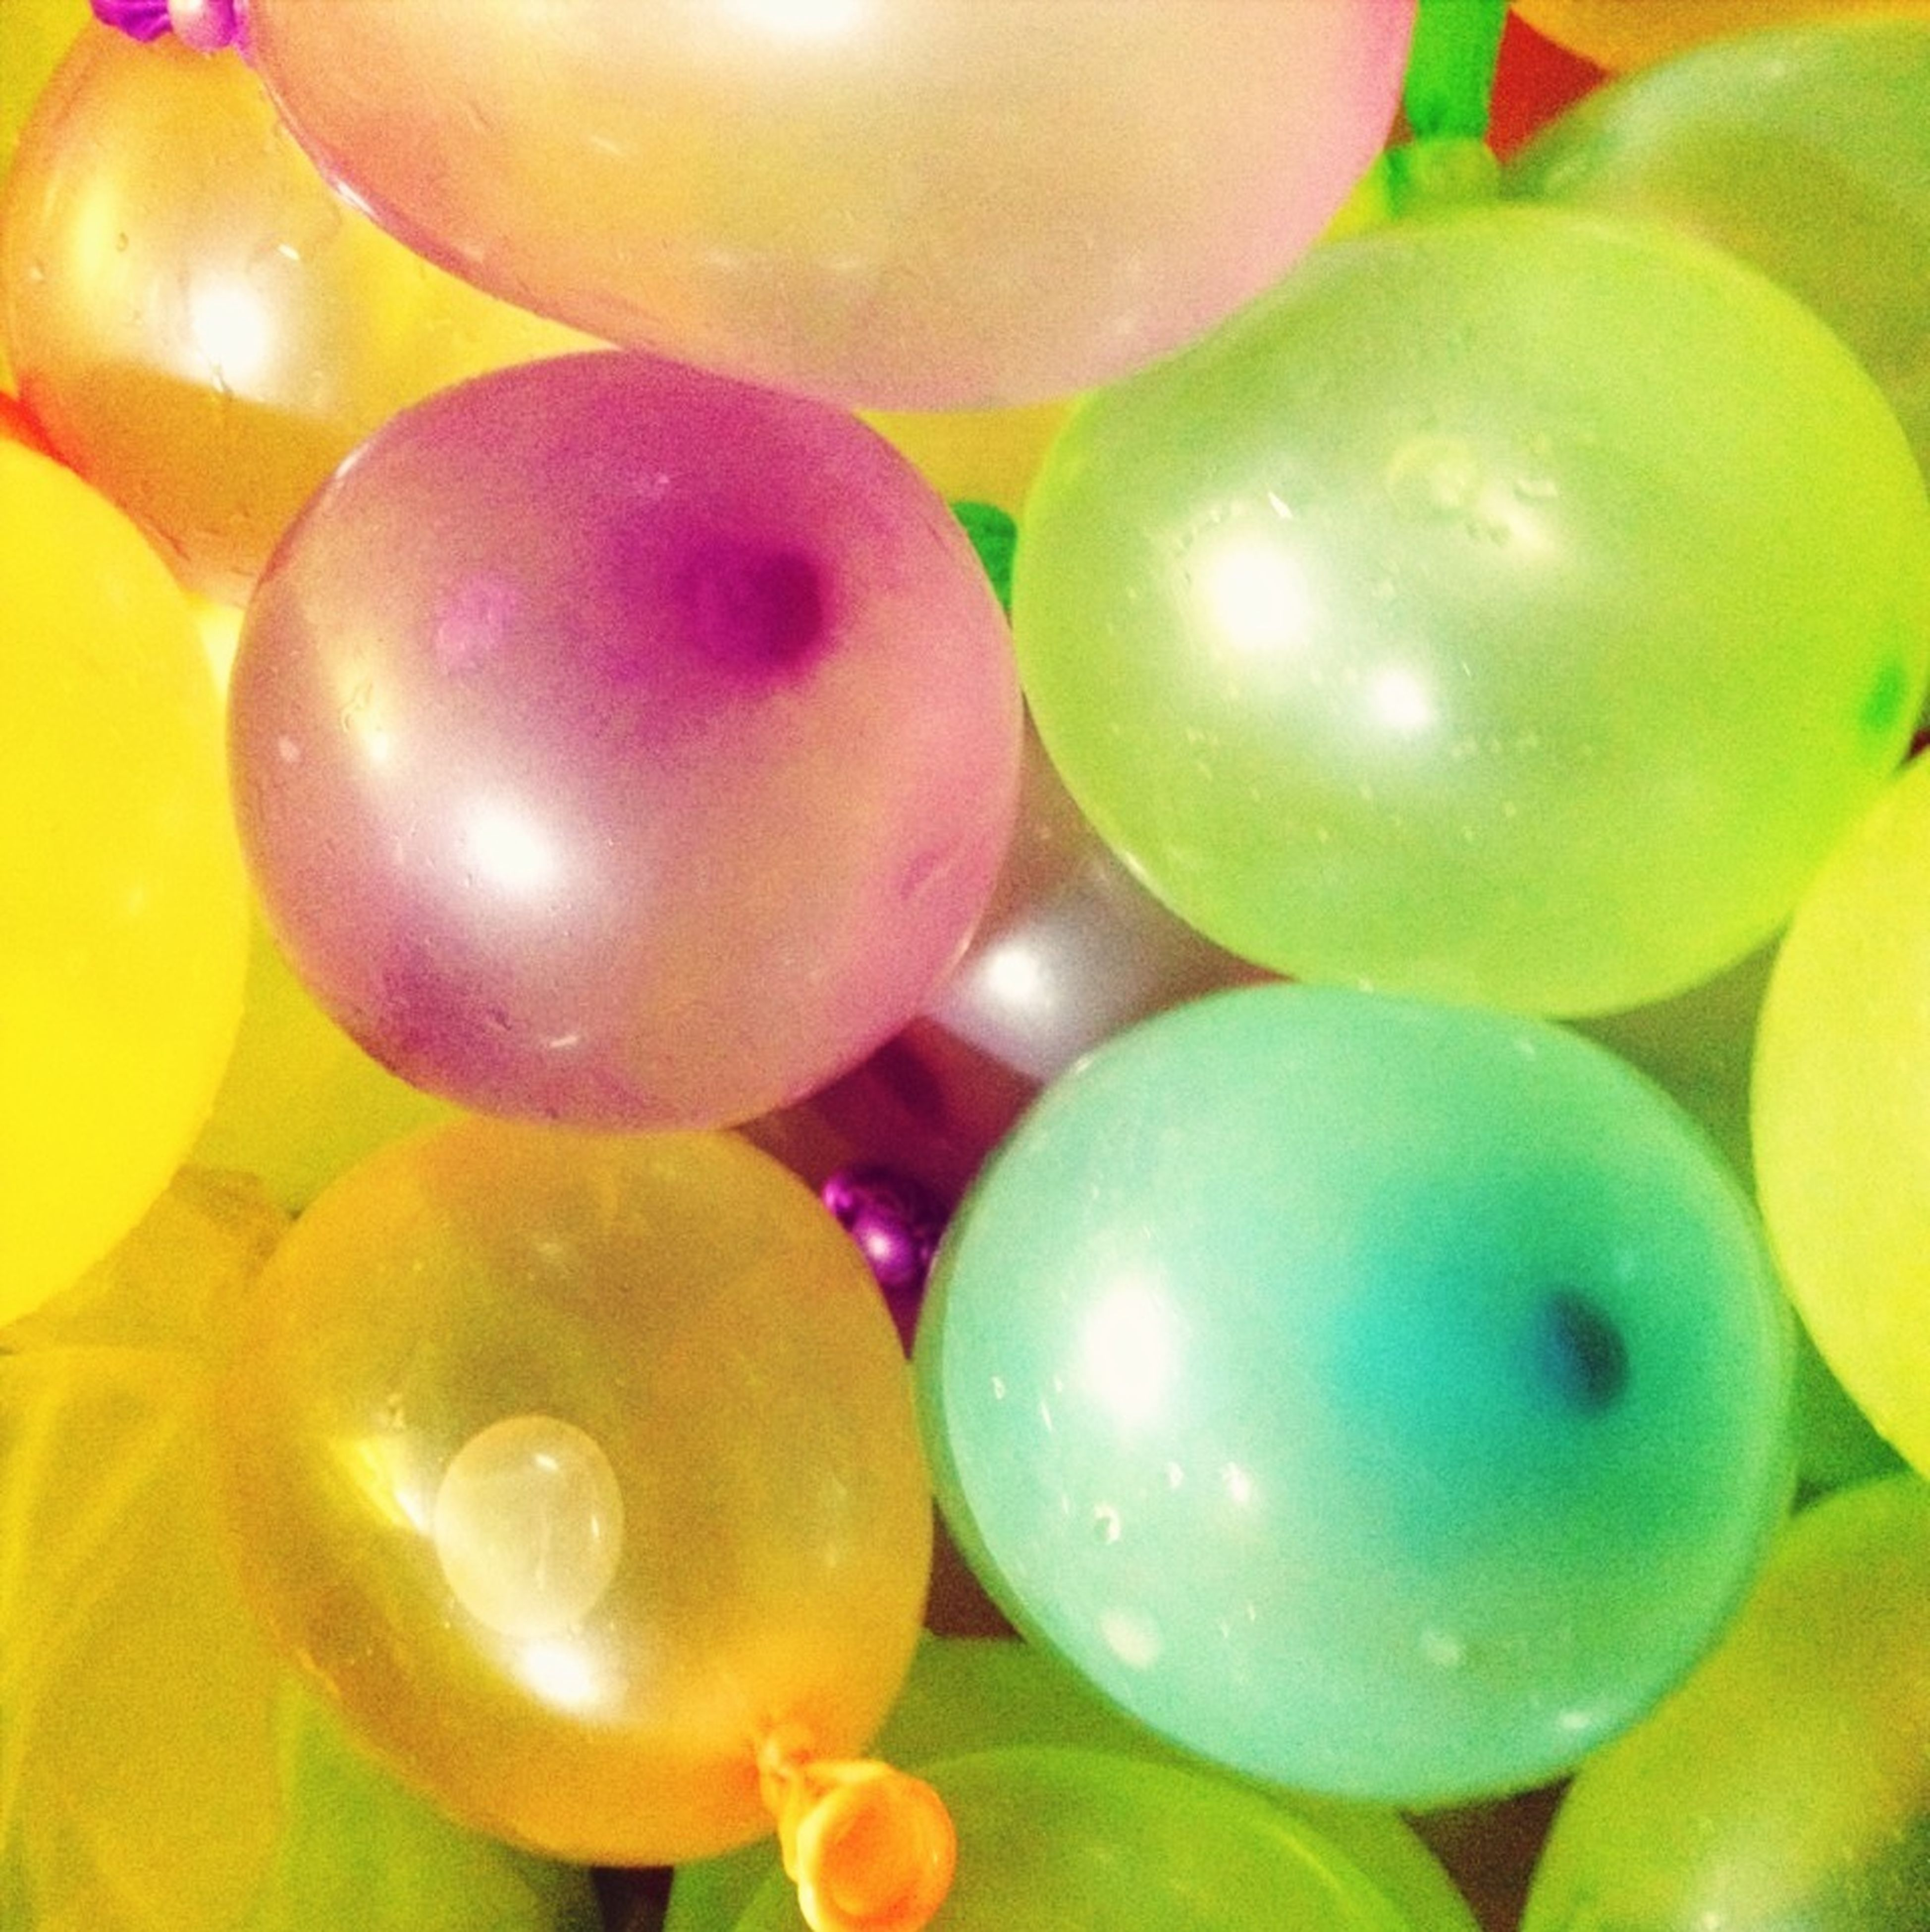 balloon, food and drink, sphere, close-up, multi colored, freshness, full frame, fruit, ball, abundance, indoors, healthy eating, food, large group of objects, backgrounds, celebration, still life, hanging, green color, variation